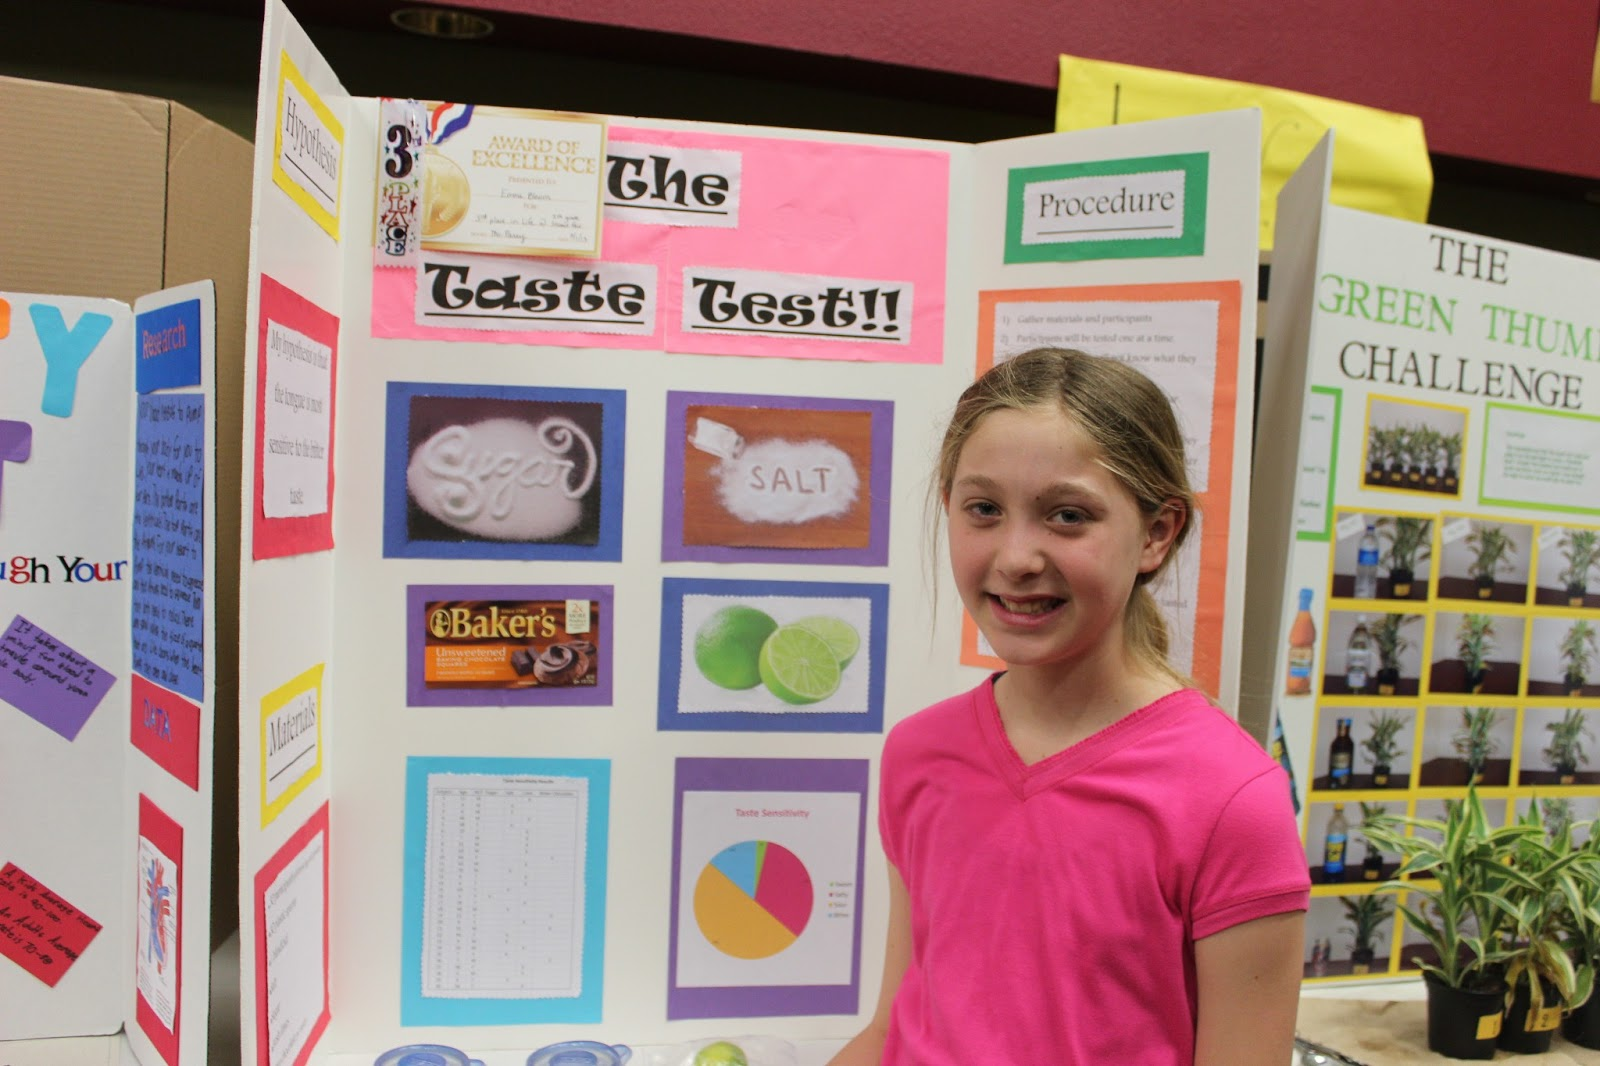 fifth grade science project 5th grade science fair projects ideas - free project examples by grade level.